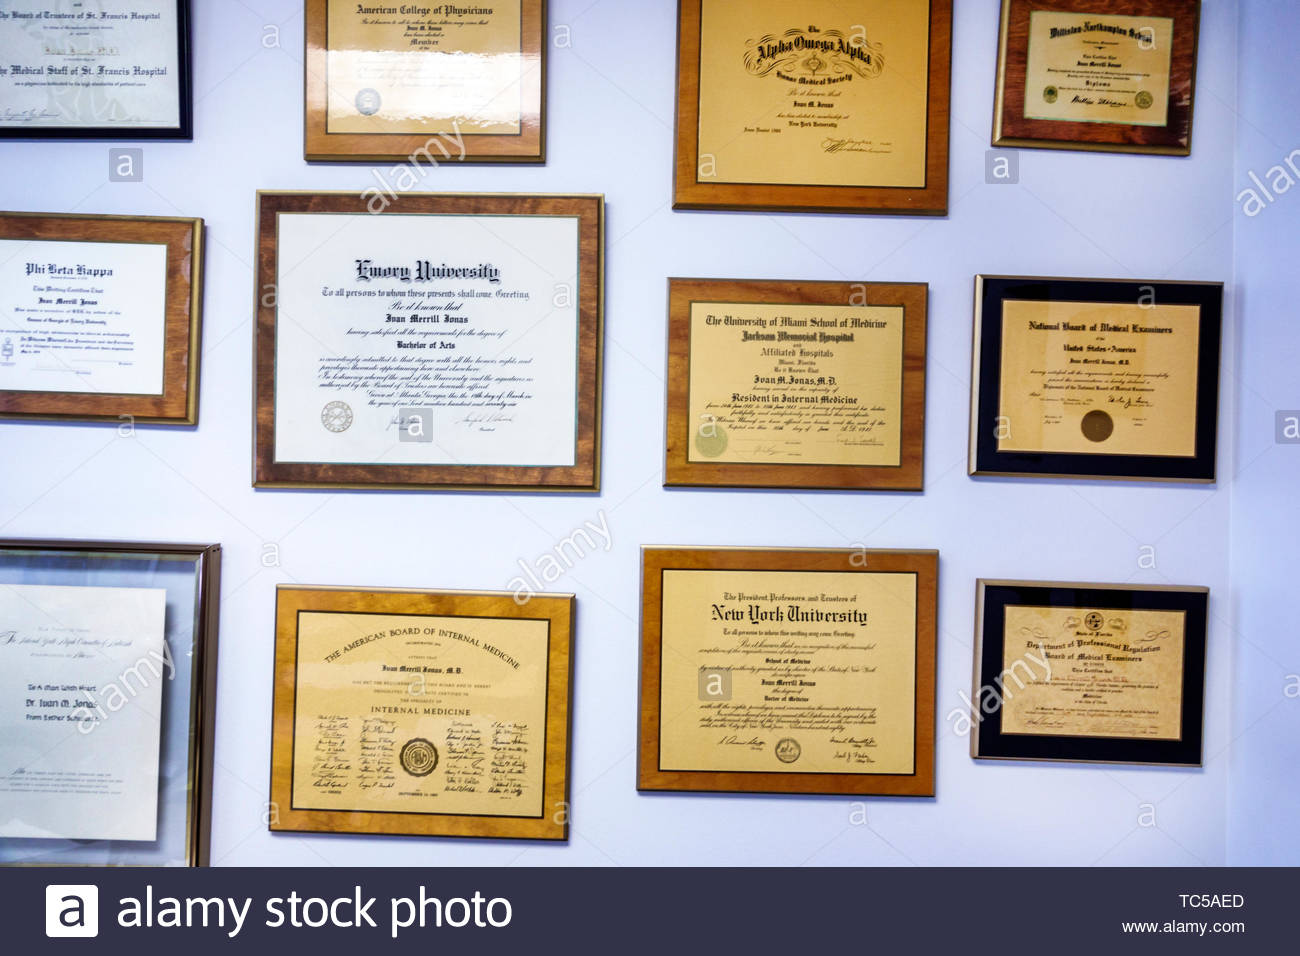 Miami Beach Florida doctor's physician's office diplomas plaques hanging wall - Stock Image